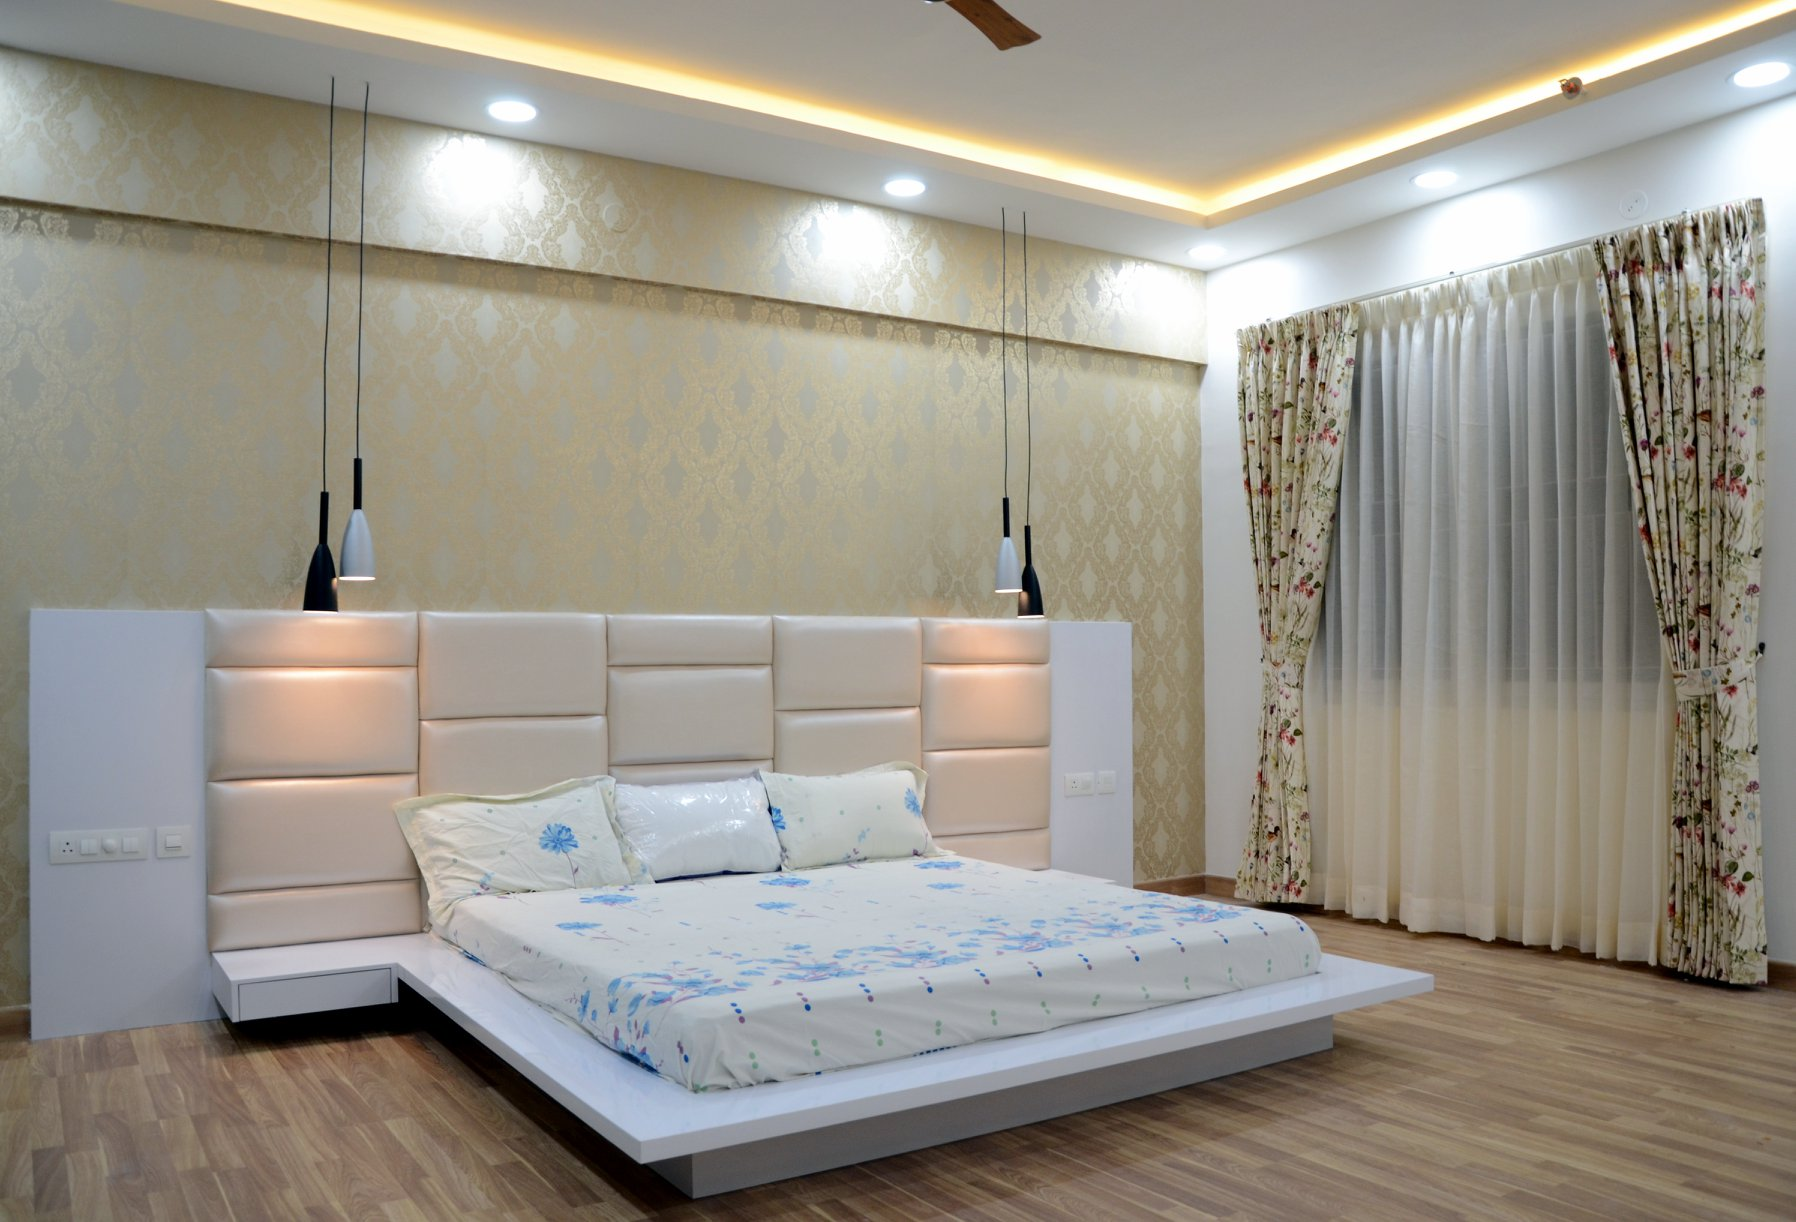 upload/bedroom/King_Size_Low_Height_Bed_Cot.jpg